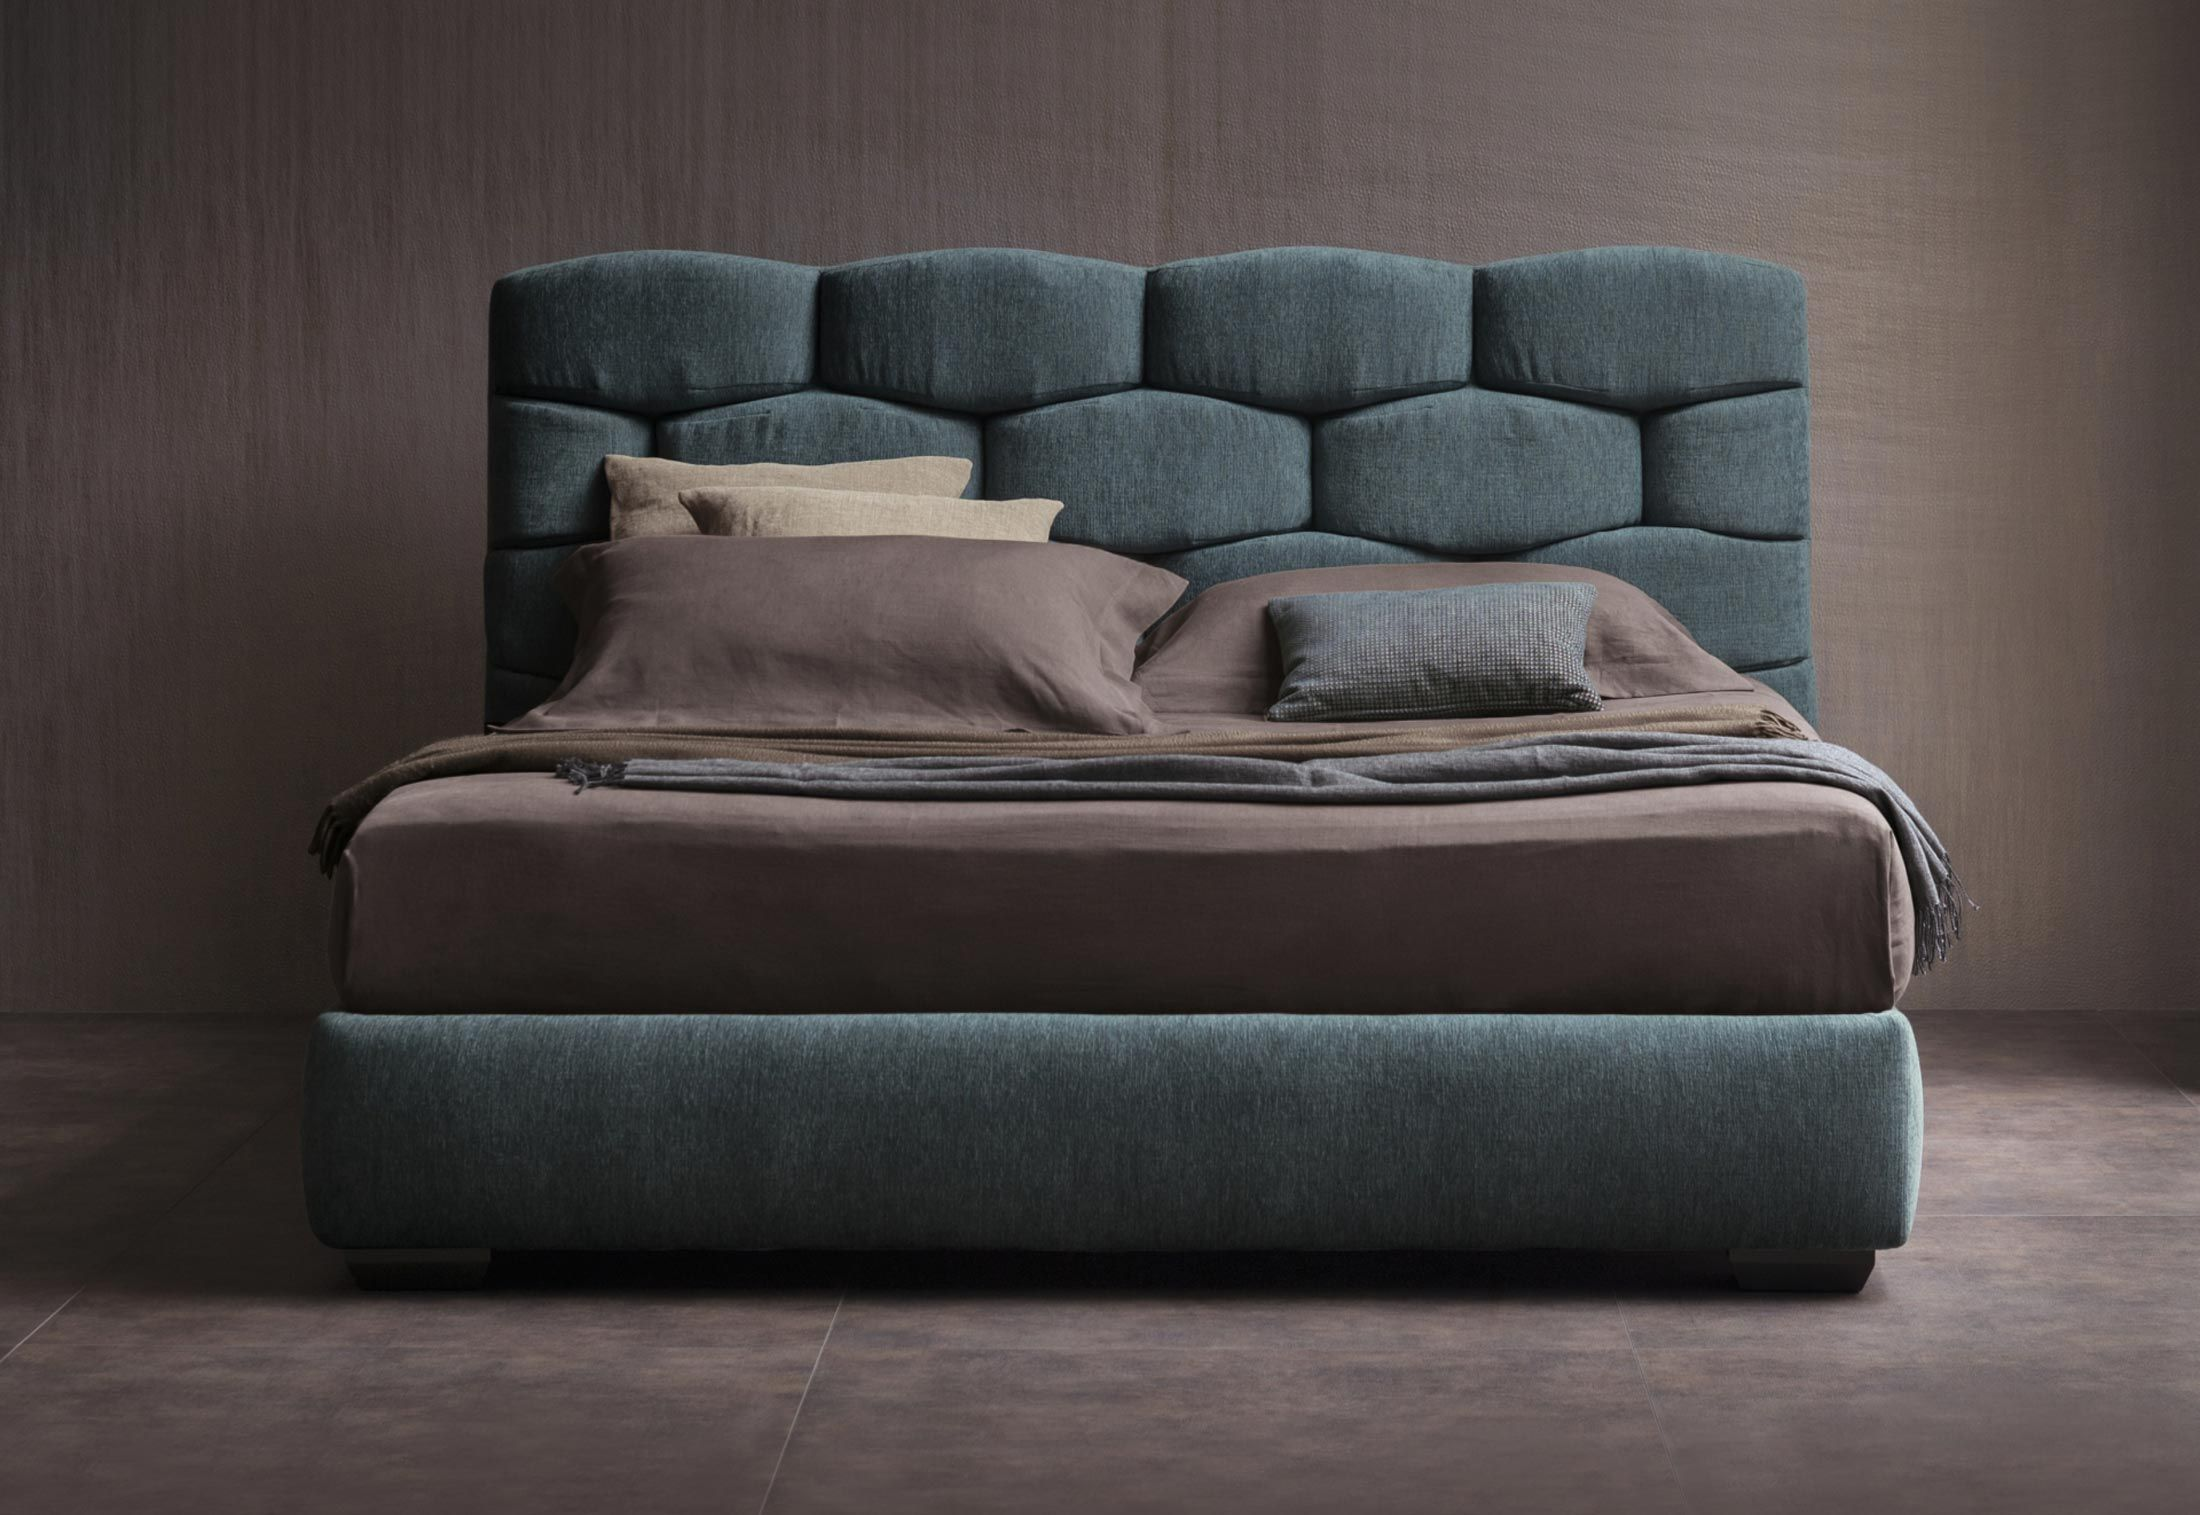 Majal Bed By Carlo Colombo For FLOU